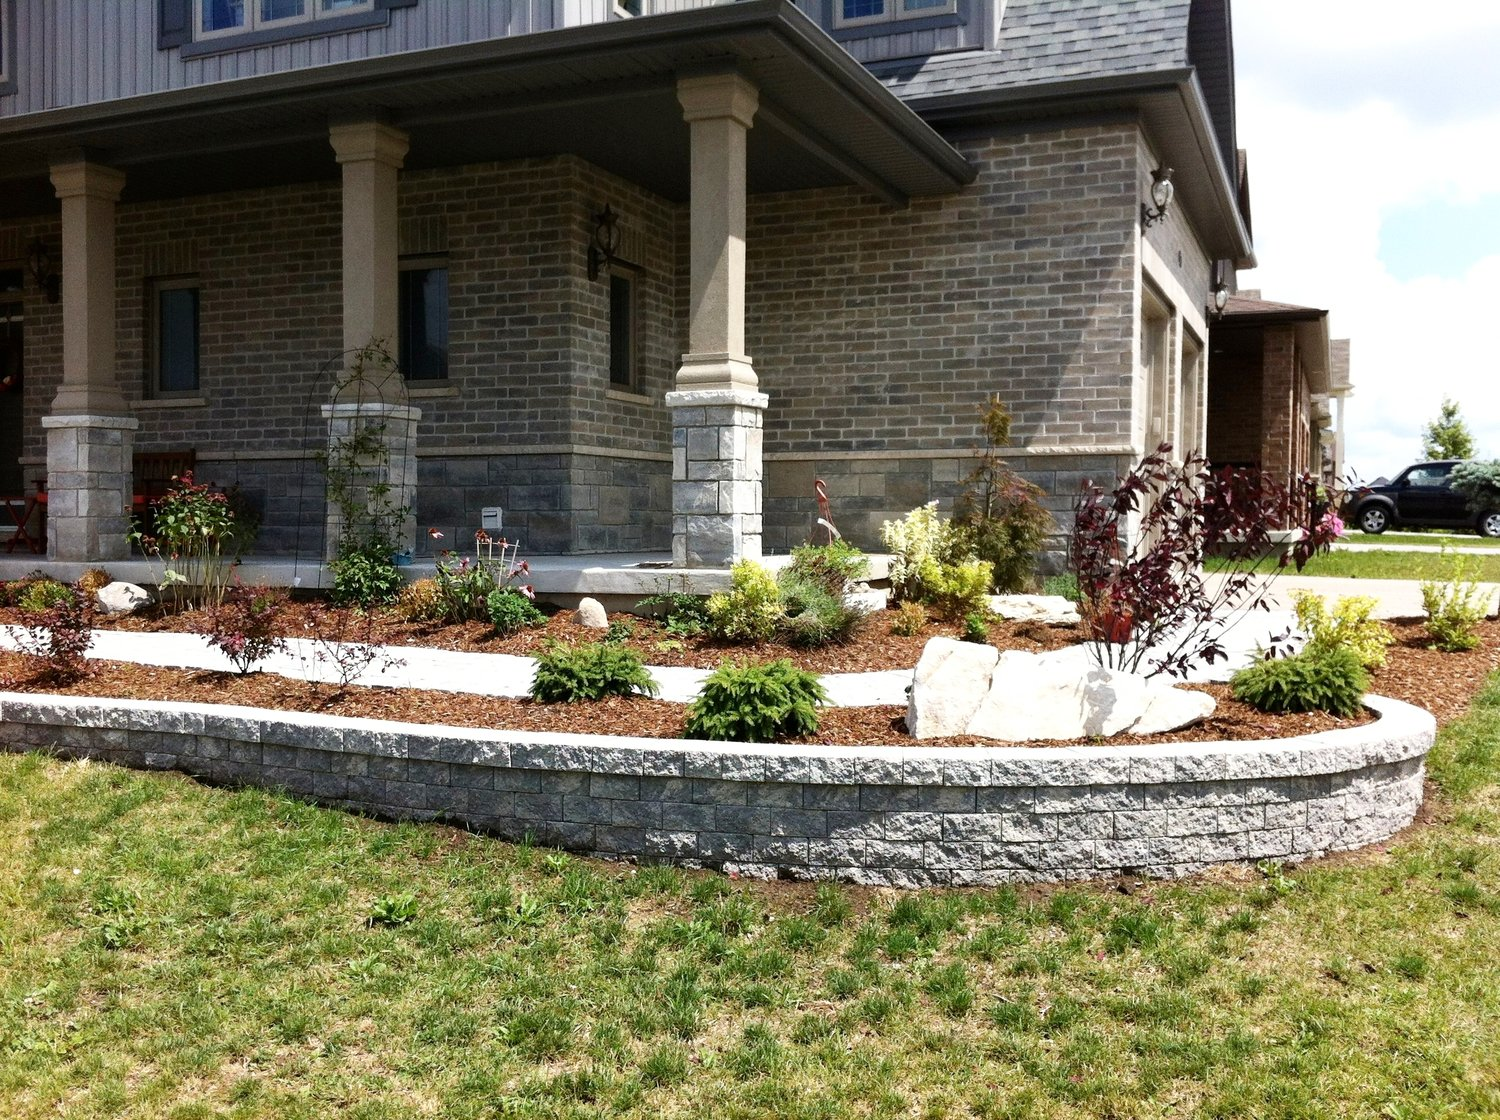 london-ontario-retaining-wall-stone-work-landscaper-15.jpeg